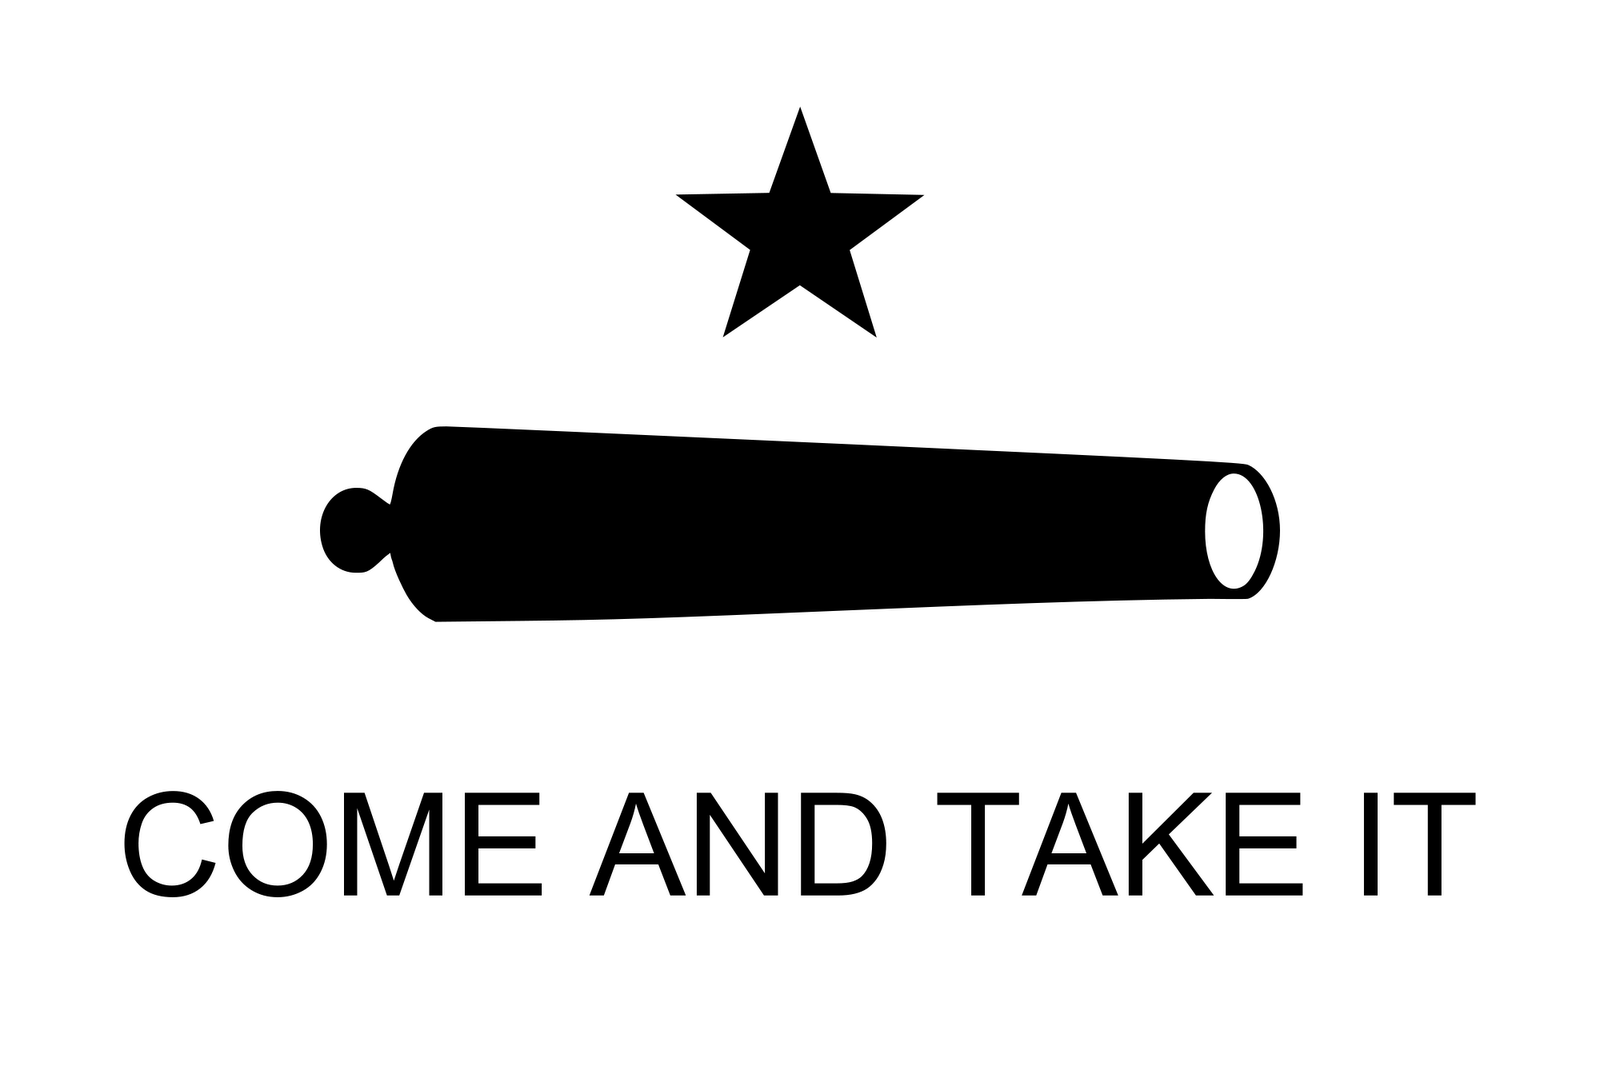 Texas_Flag_Come_and_Take_It.png